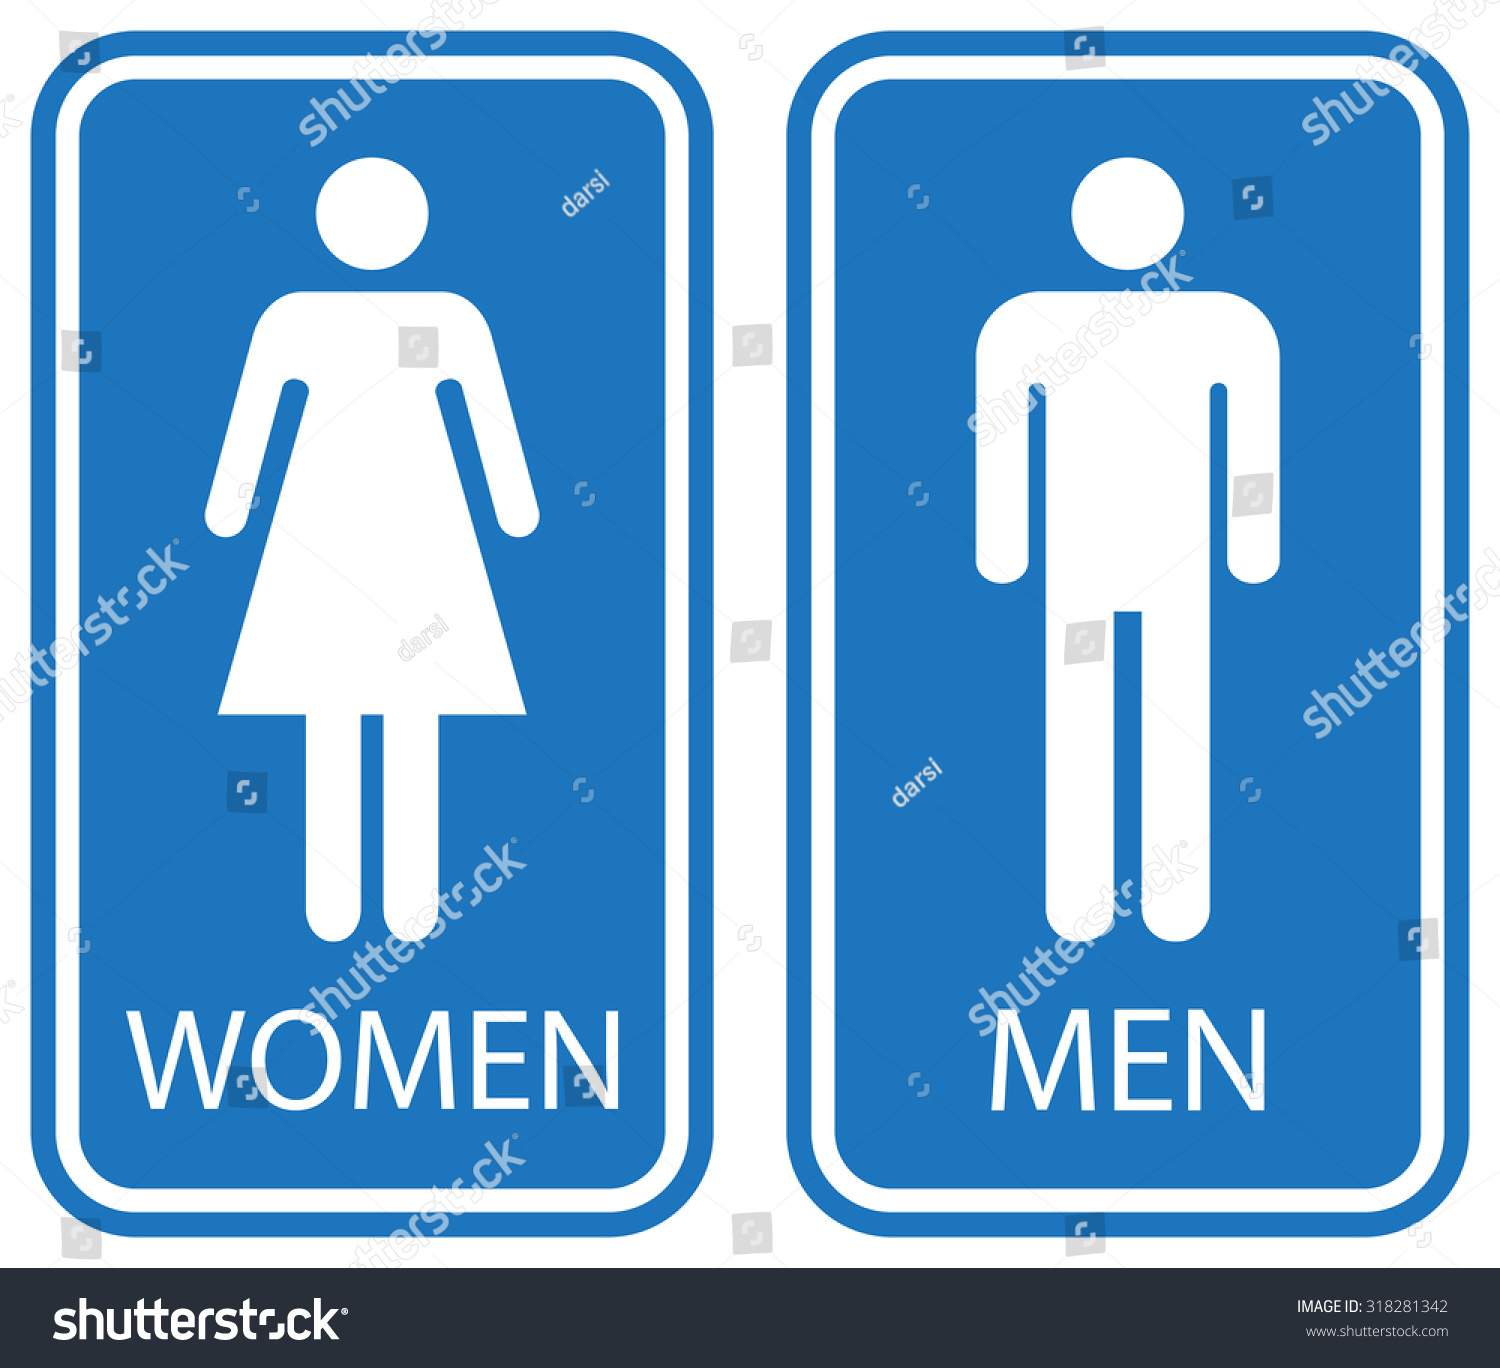 Female bathroom